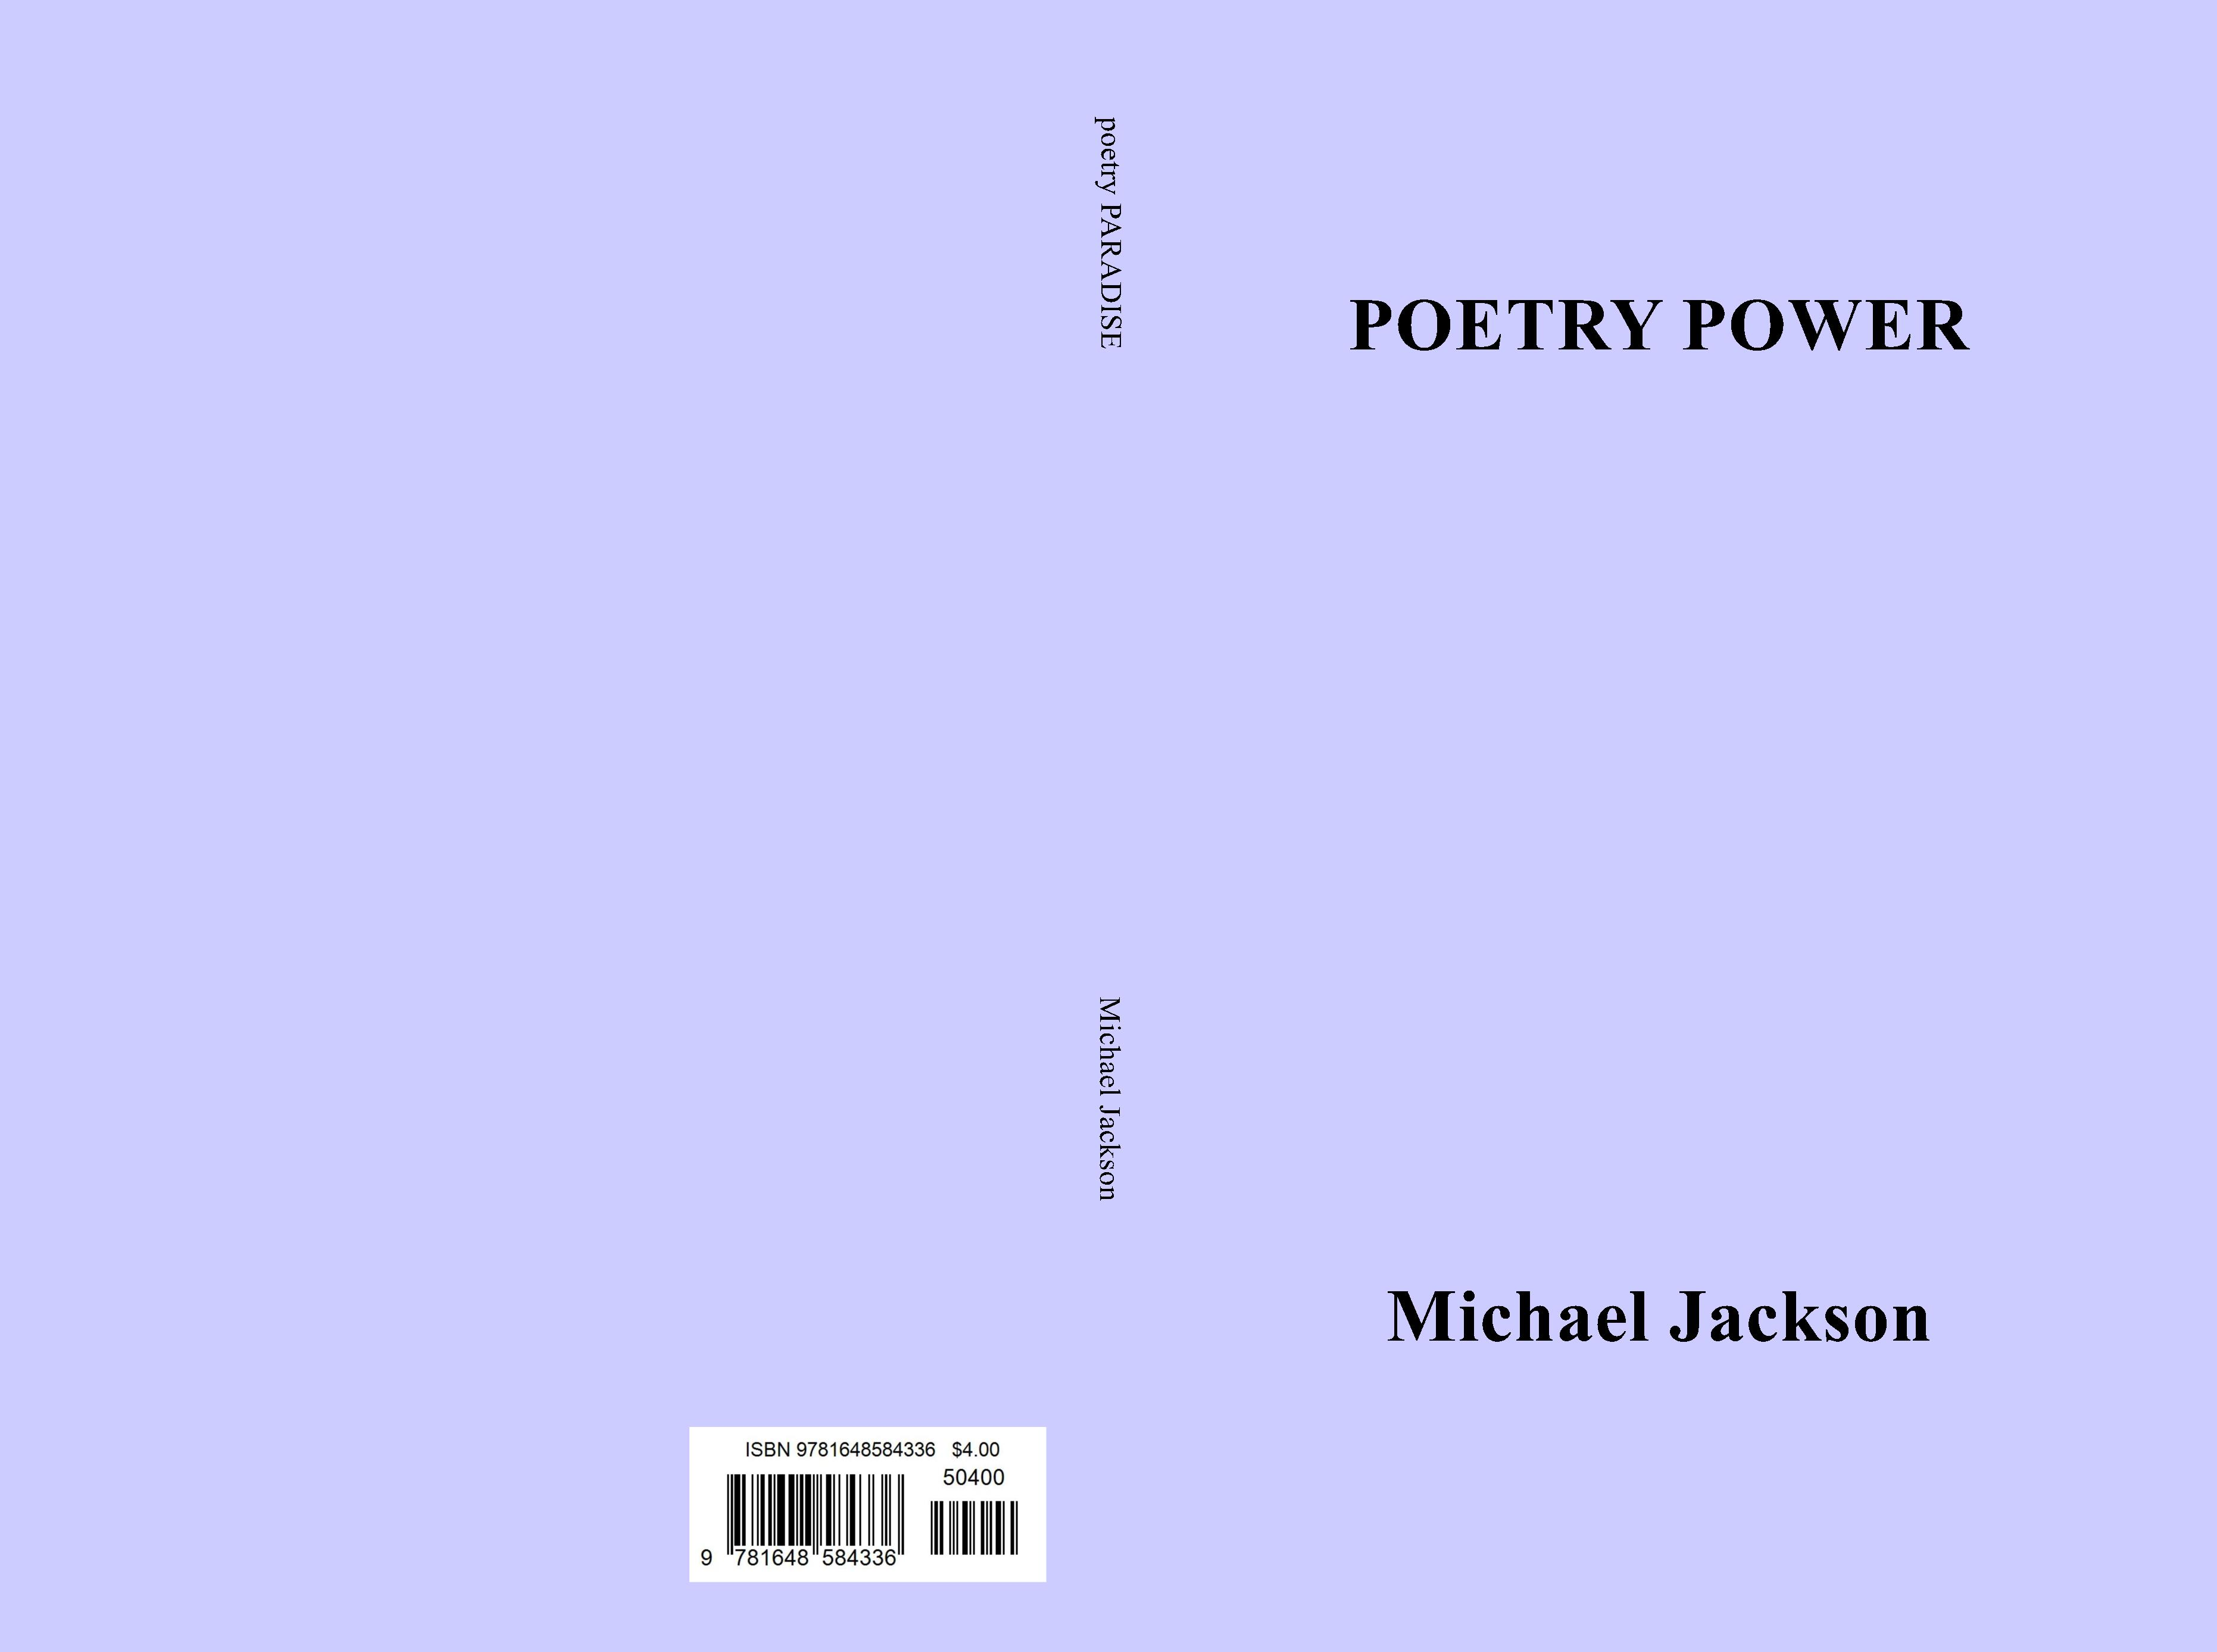 POETRY POWER cover image